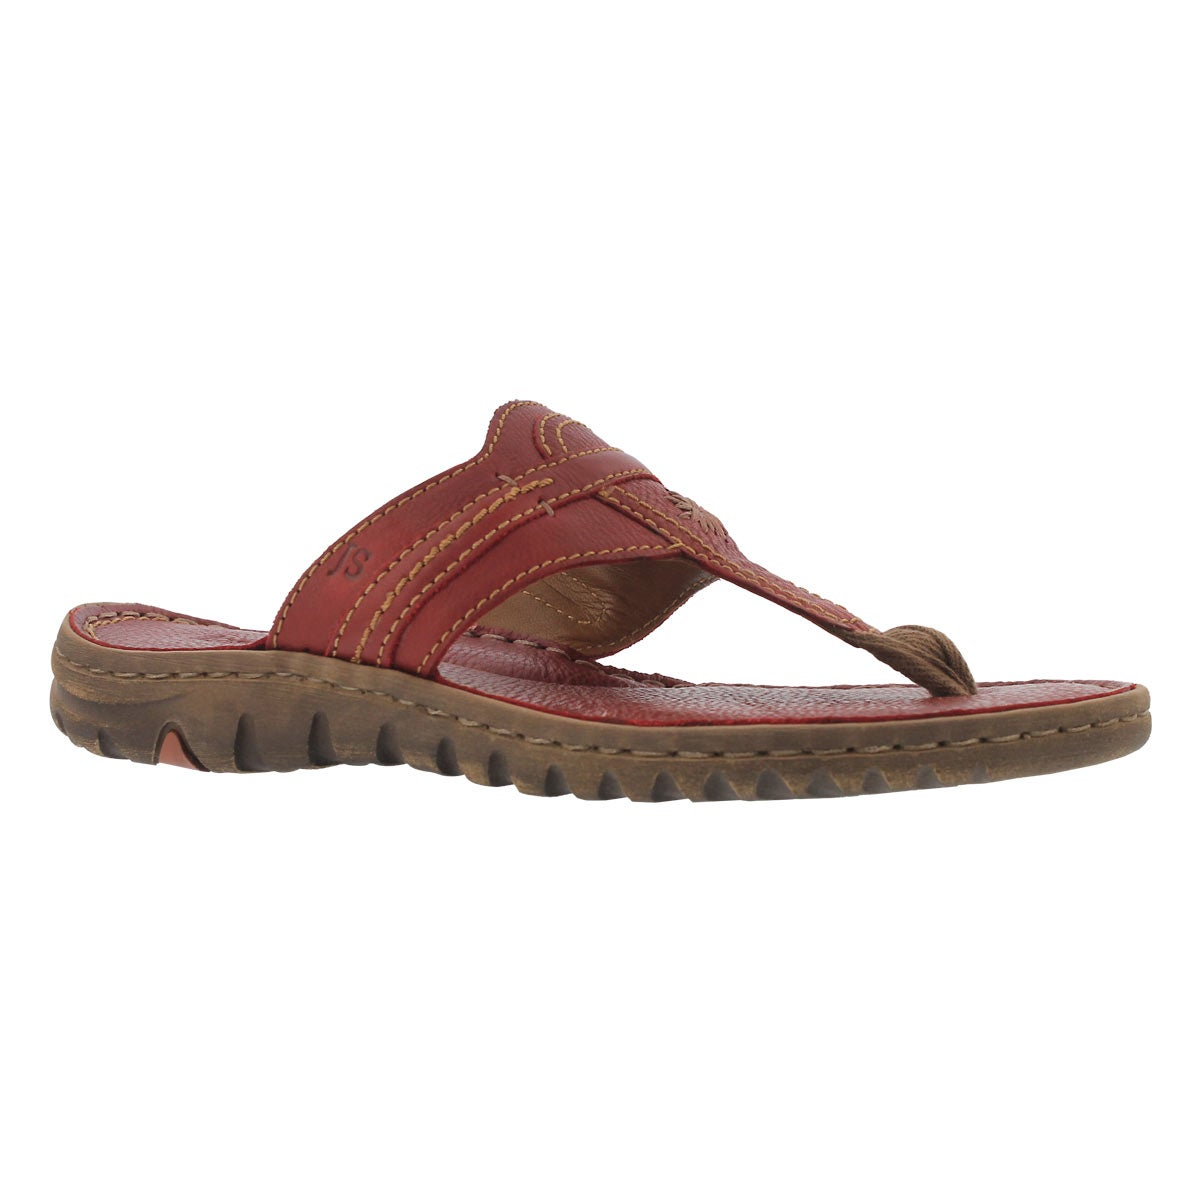 Women's LUCIA 09 red casual thng sandals